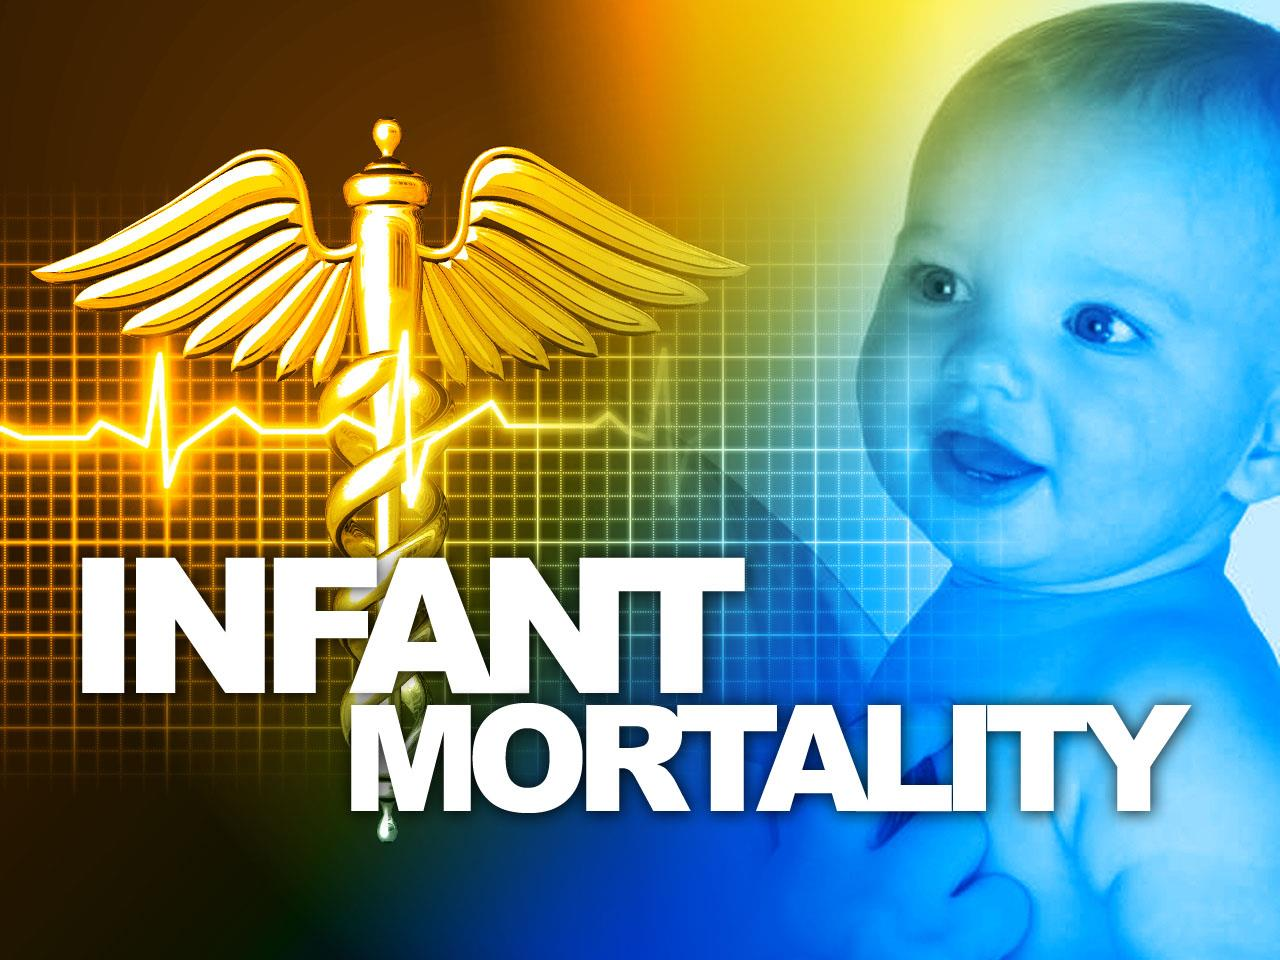 Infant mortality forum held in Evansville